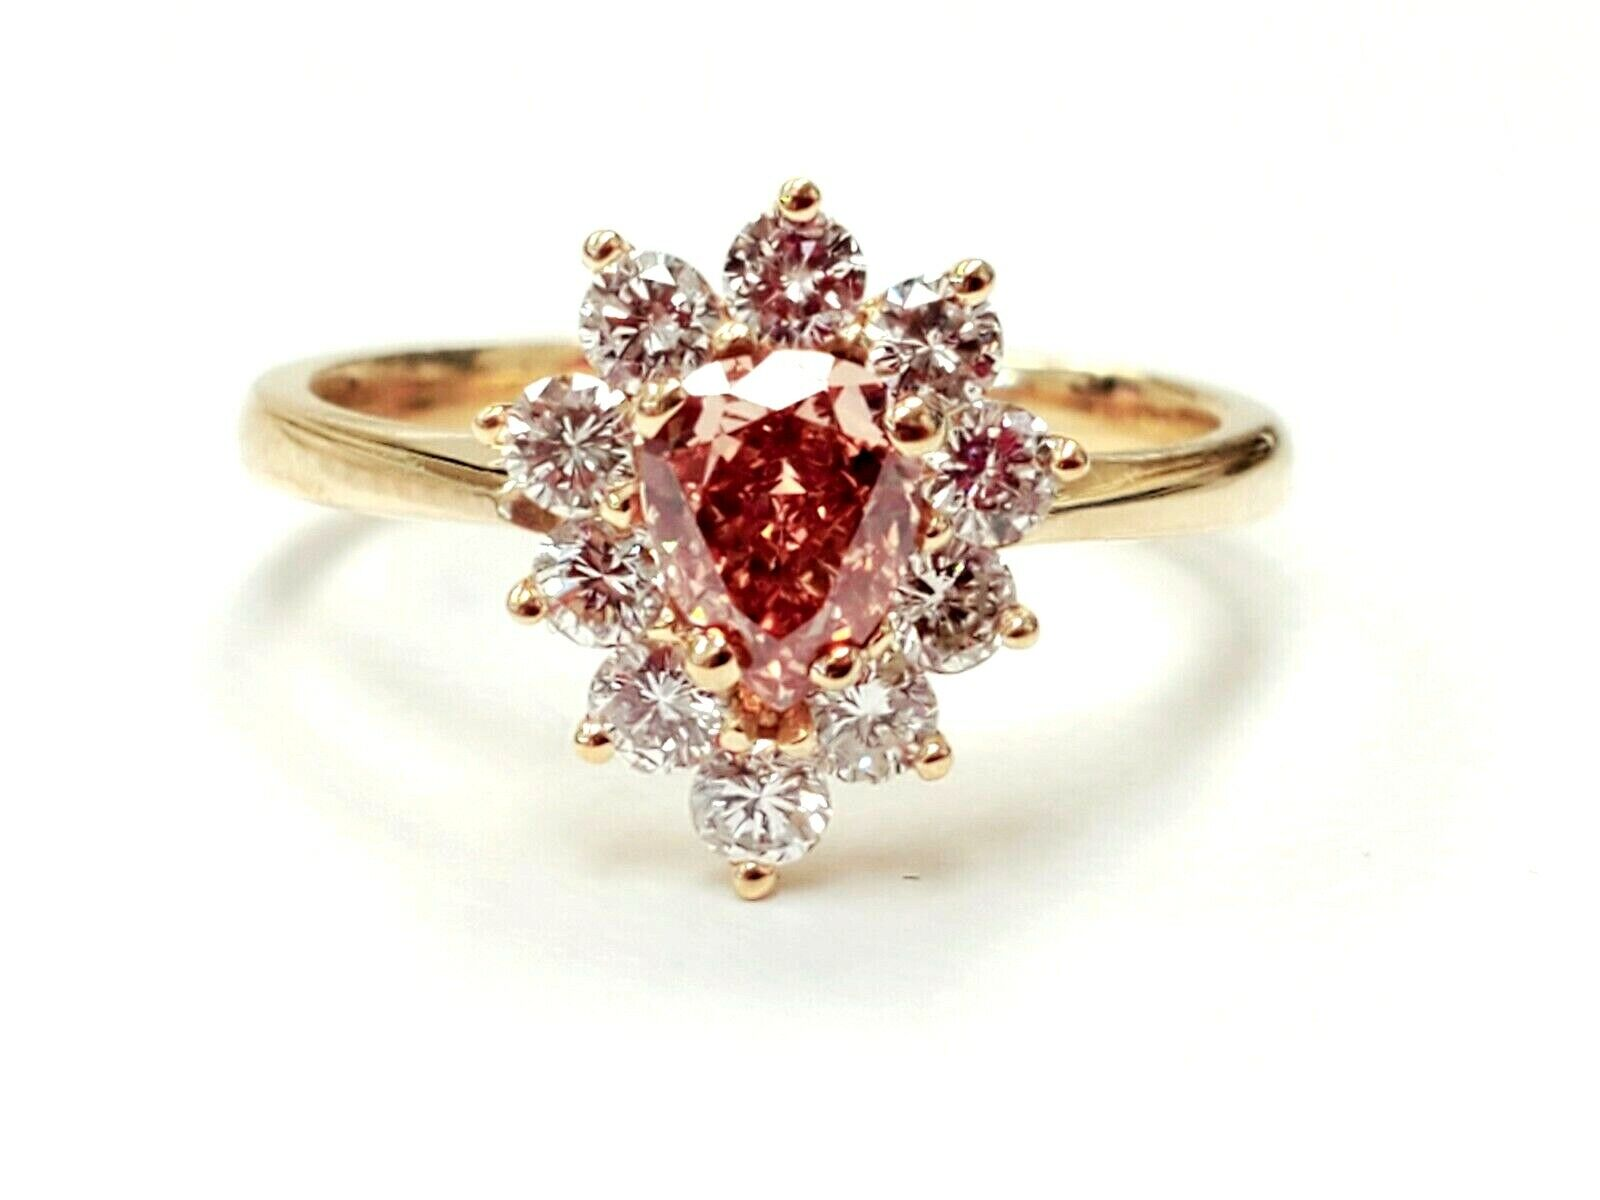 Fancy Pink Diamond Ring 18k Yellow Gold 0.80CT GIA Certified Pear Cut Brilliant